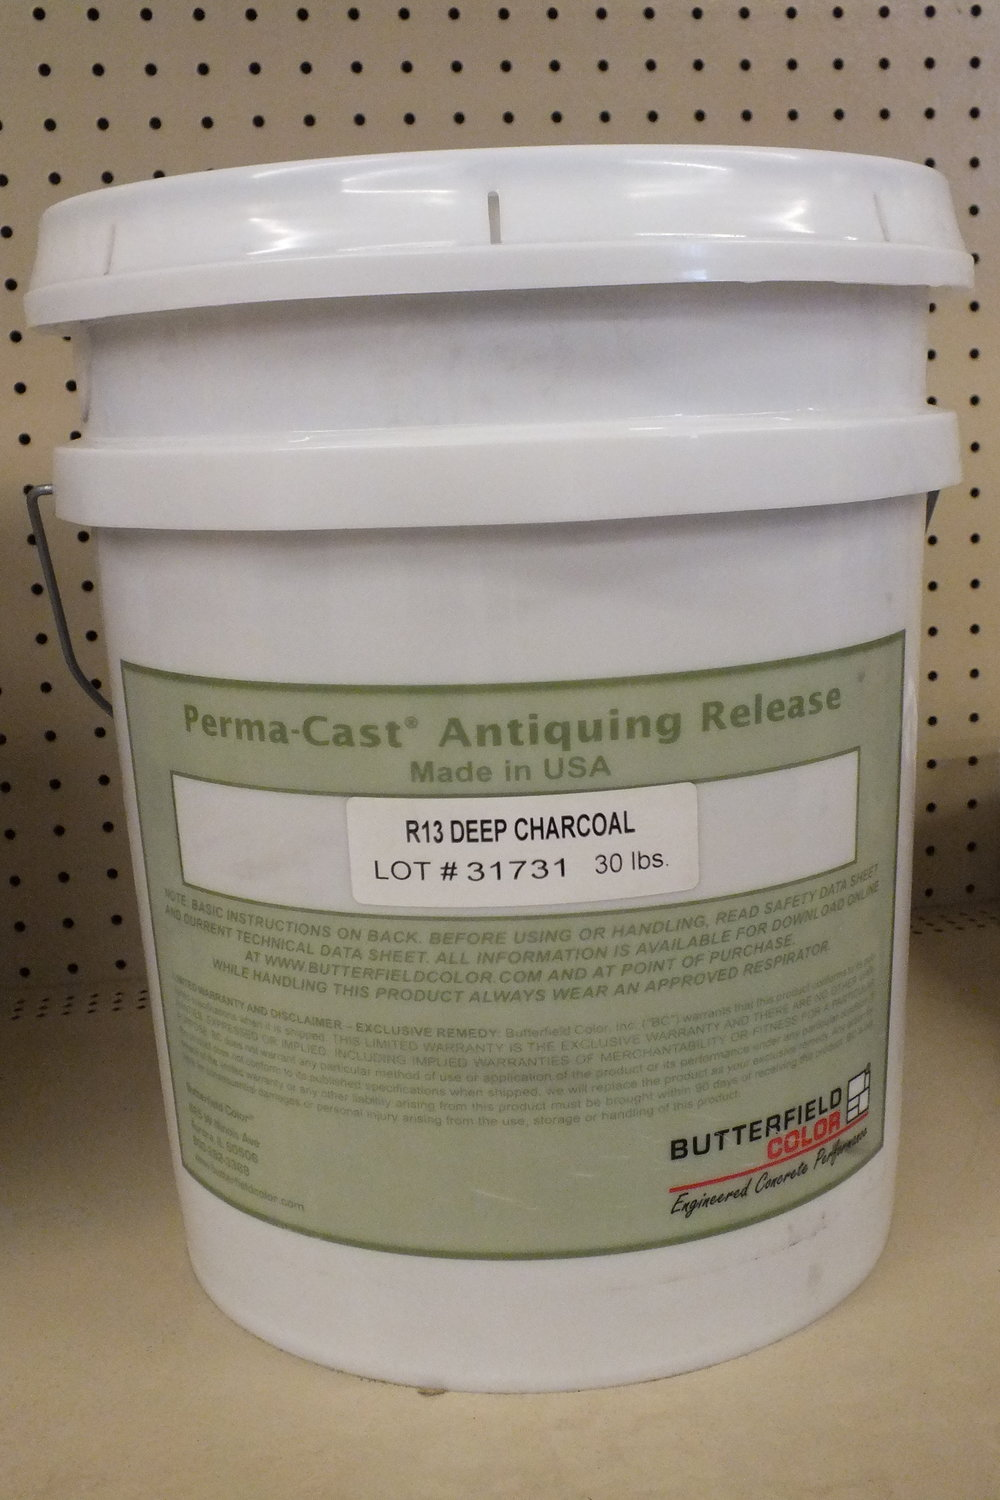 Butterfield Perma Cast Antiquing Release -